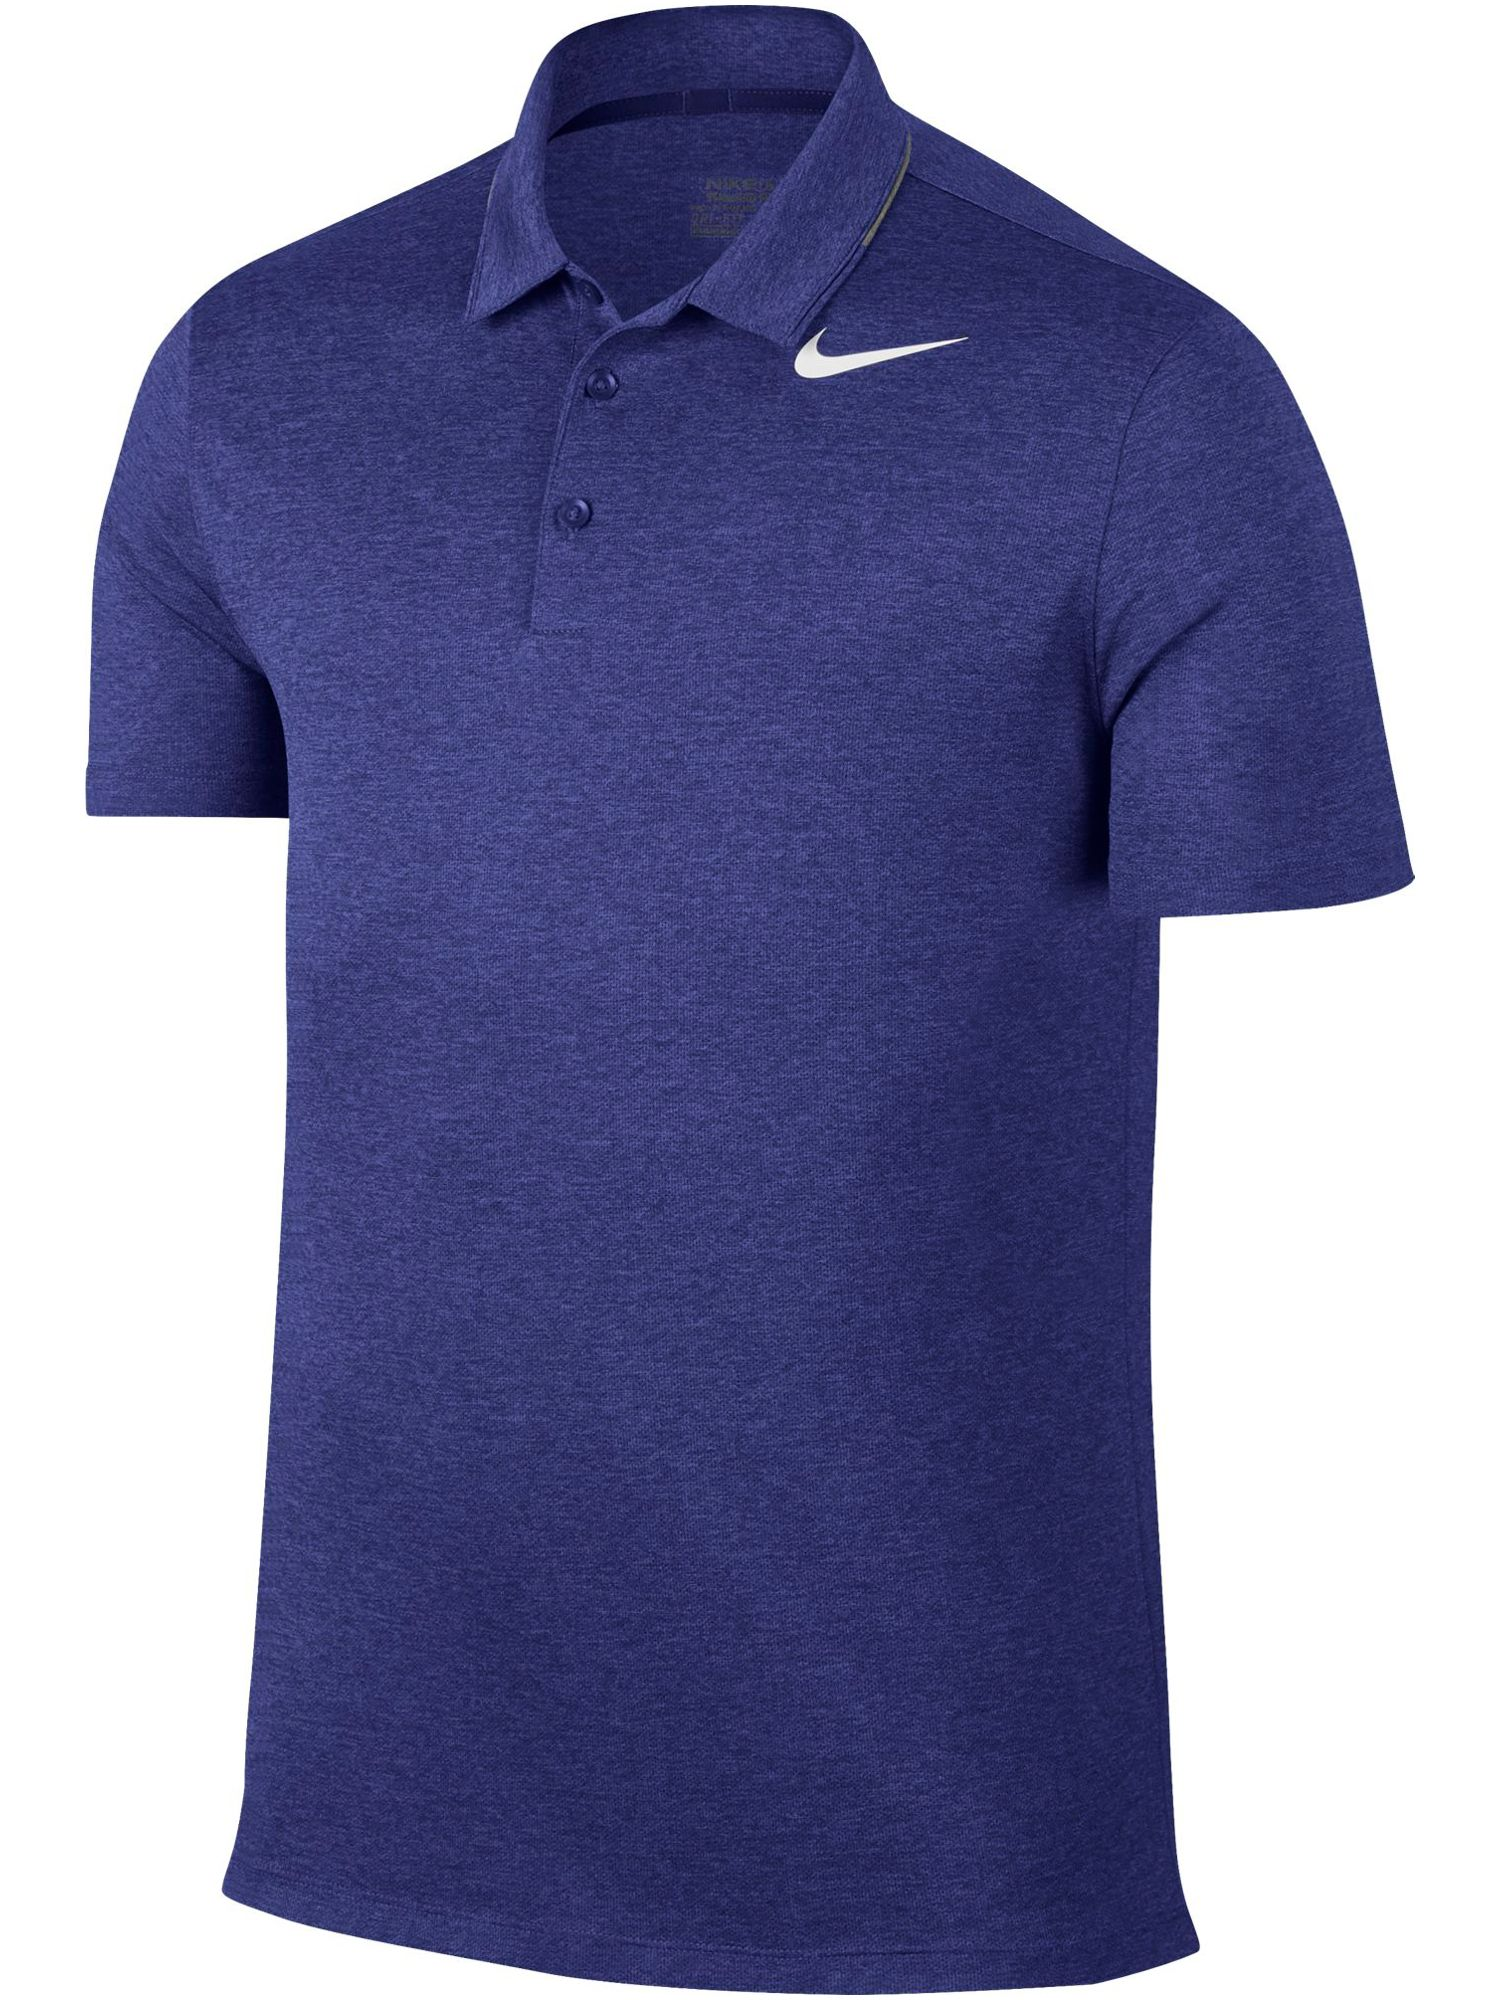 Men's Nike Breathe Heather Polo, Blue